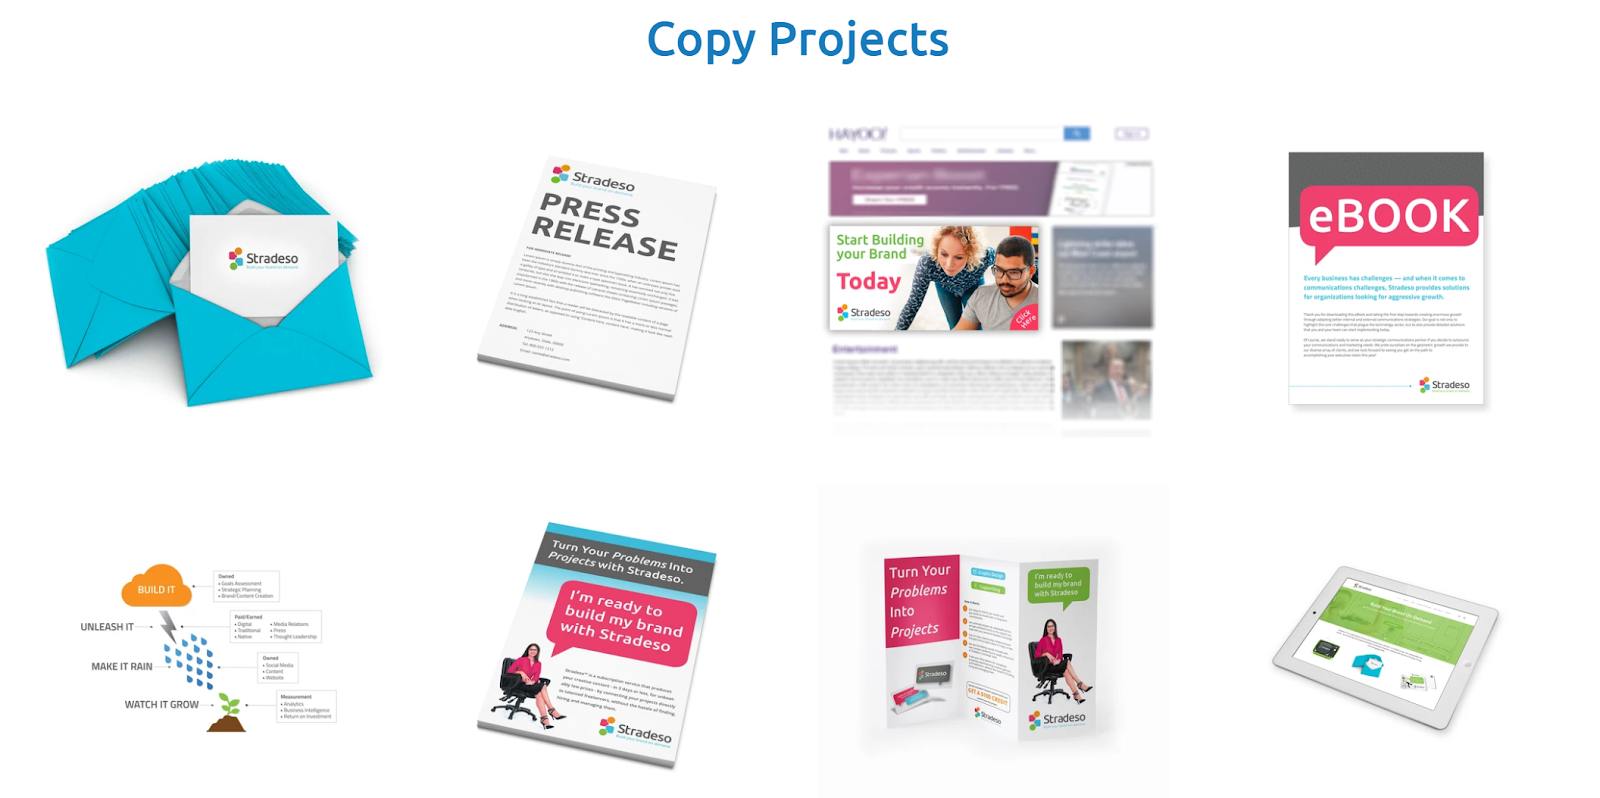 on-launching-a-copywriting-and-graphic-design-marketplace-from-an-agency